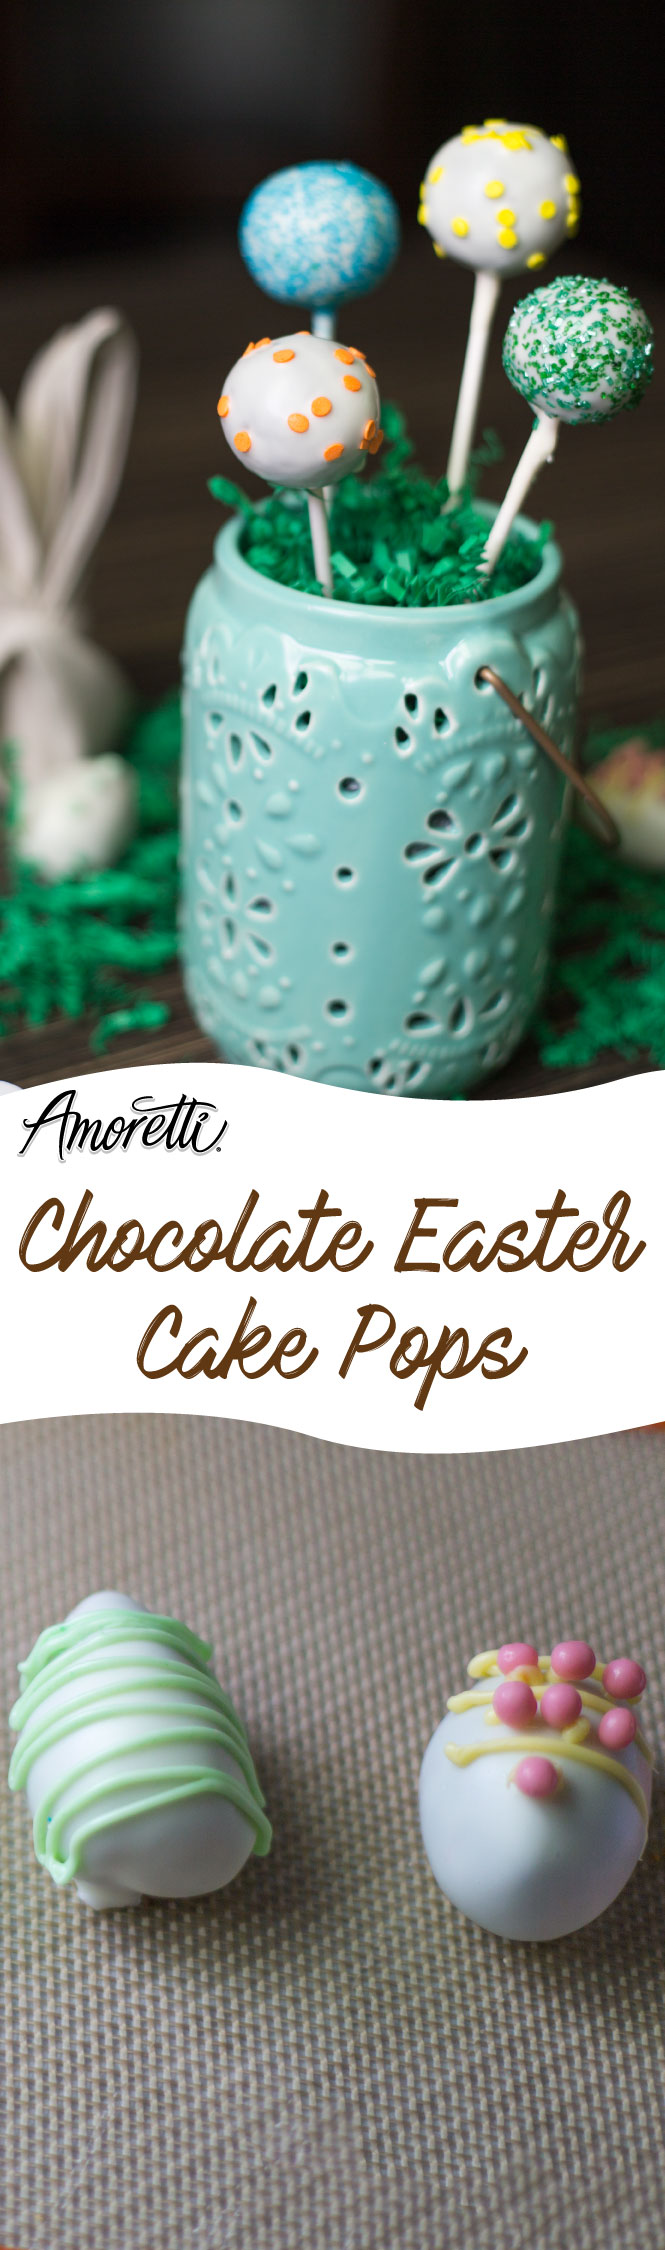 Fun and simple Cake Pops to make for Easter!